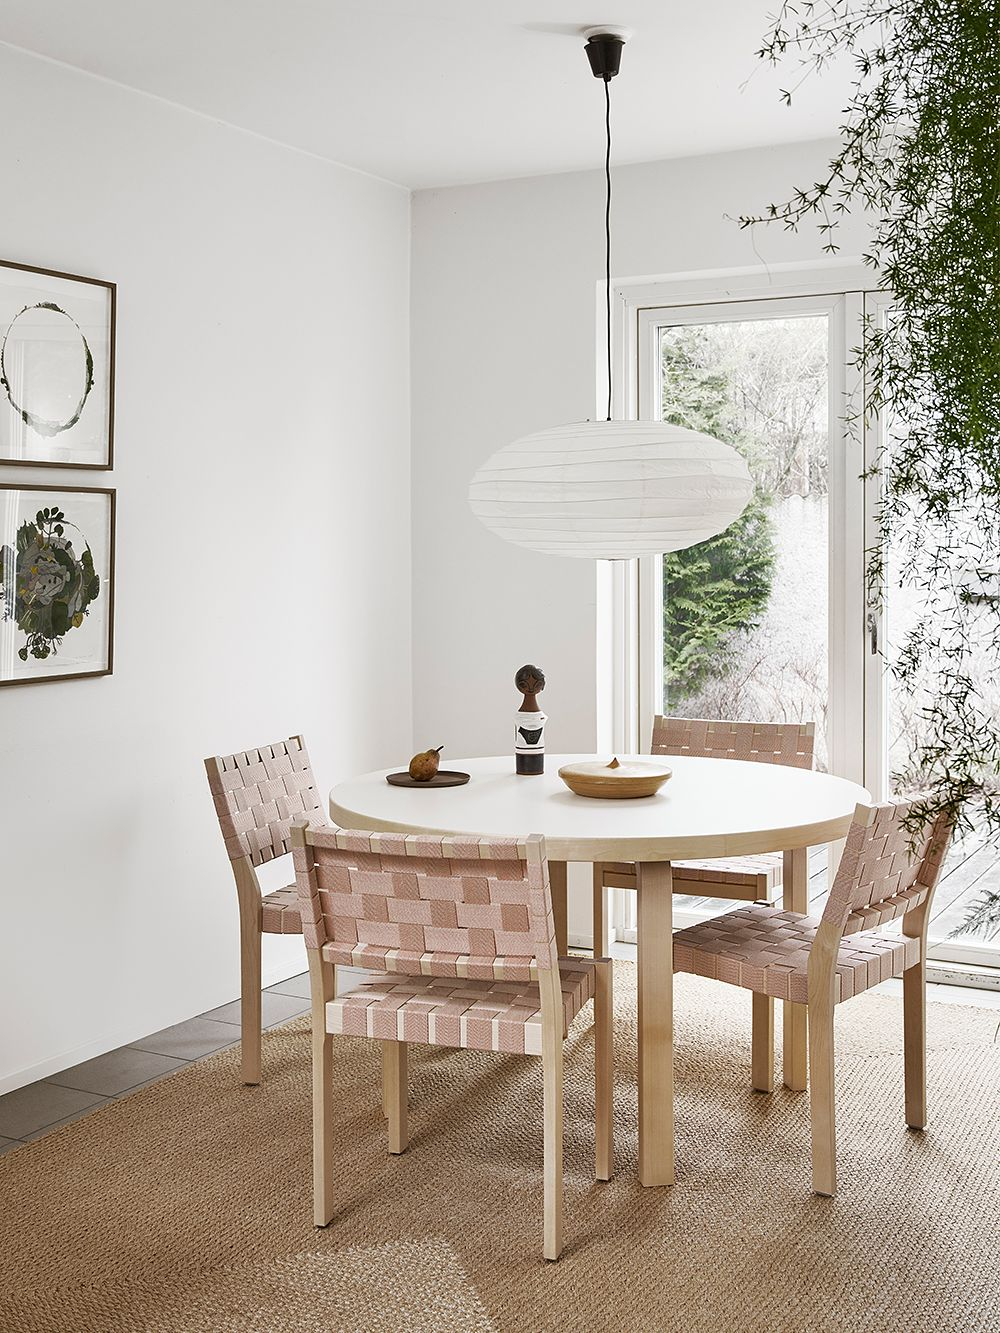 Artek's 611 chairs around a dining table.